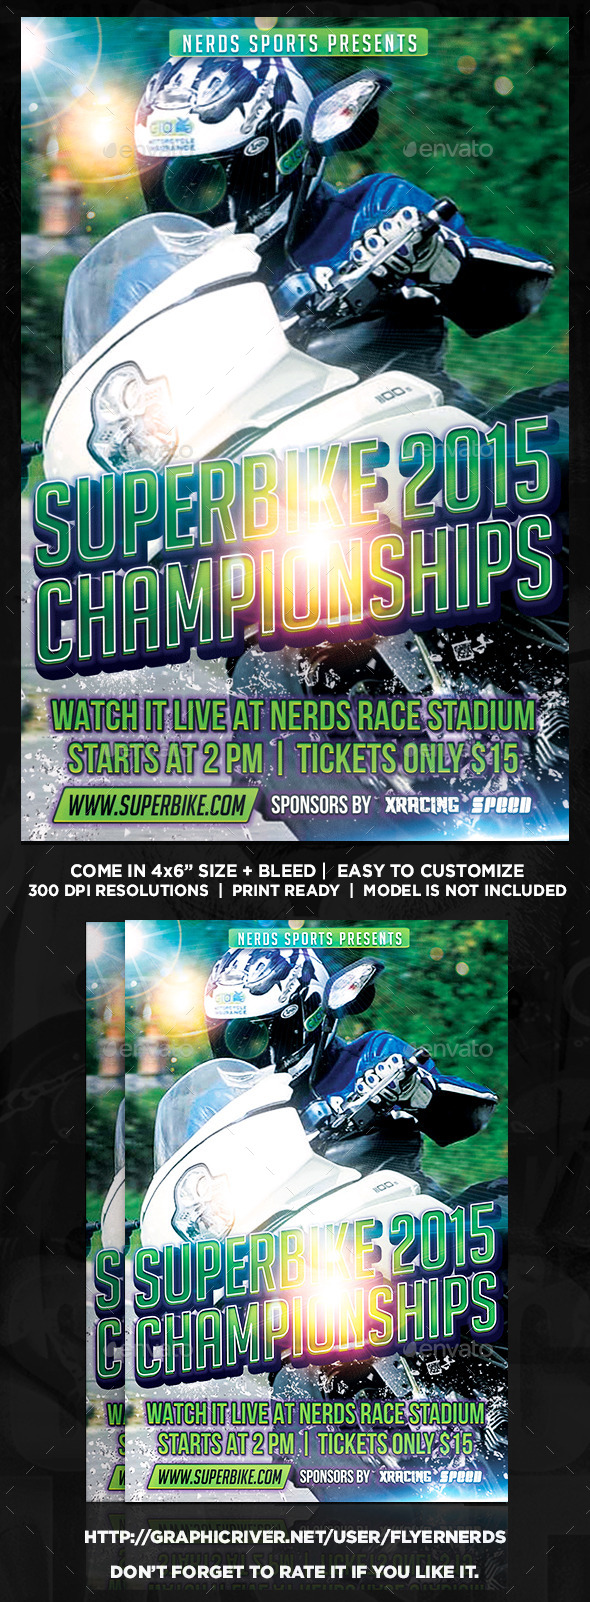 Superbike 2015 Championships Sports Flyer - Sports Events